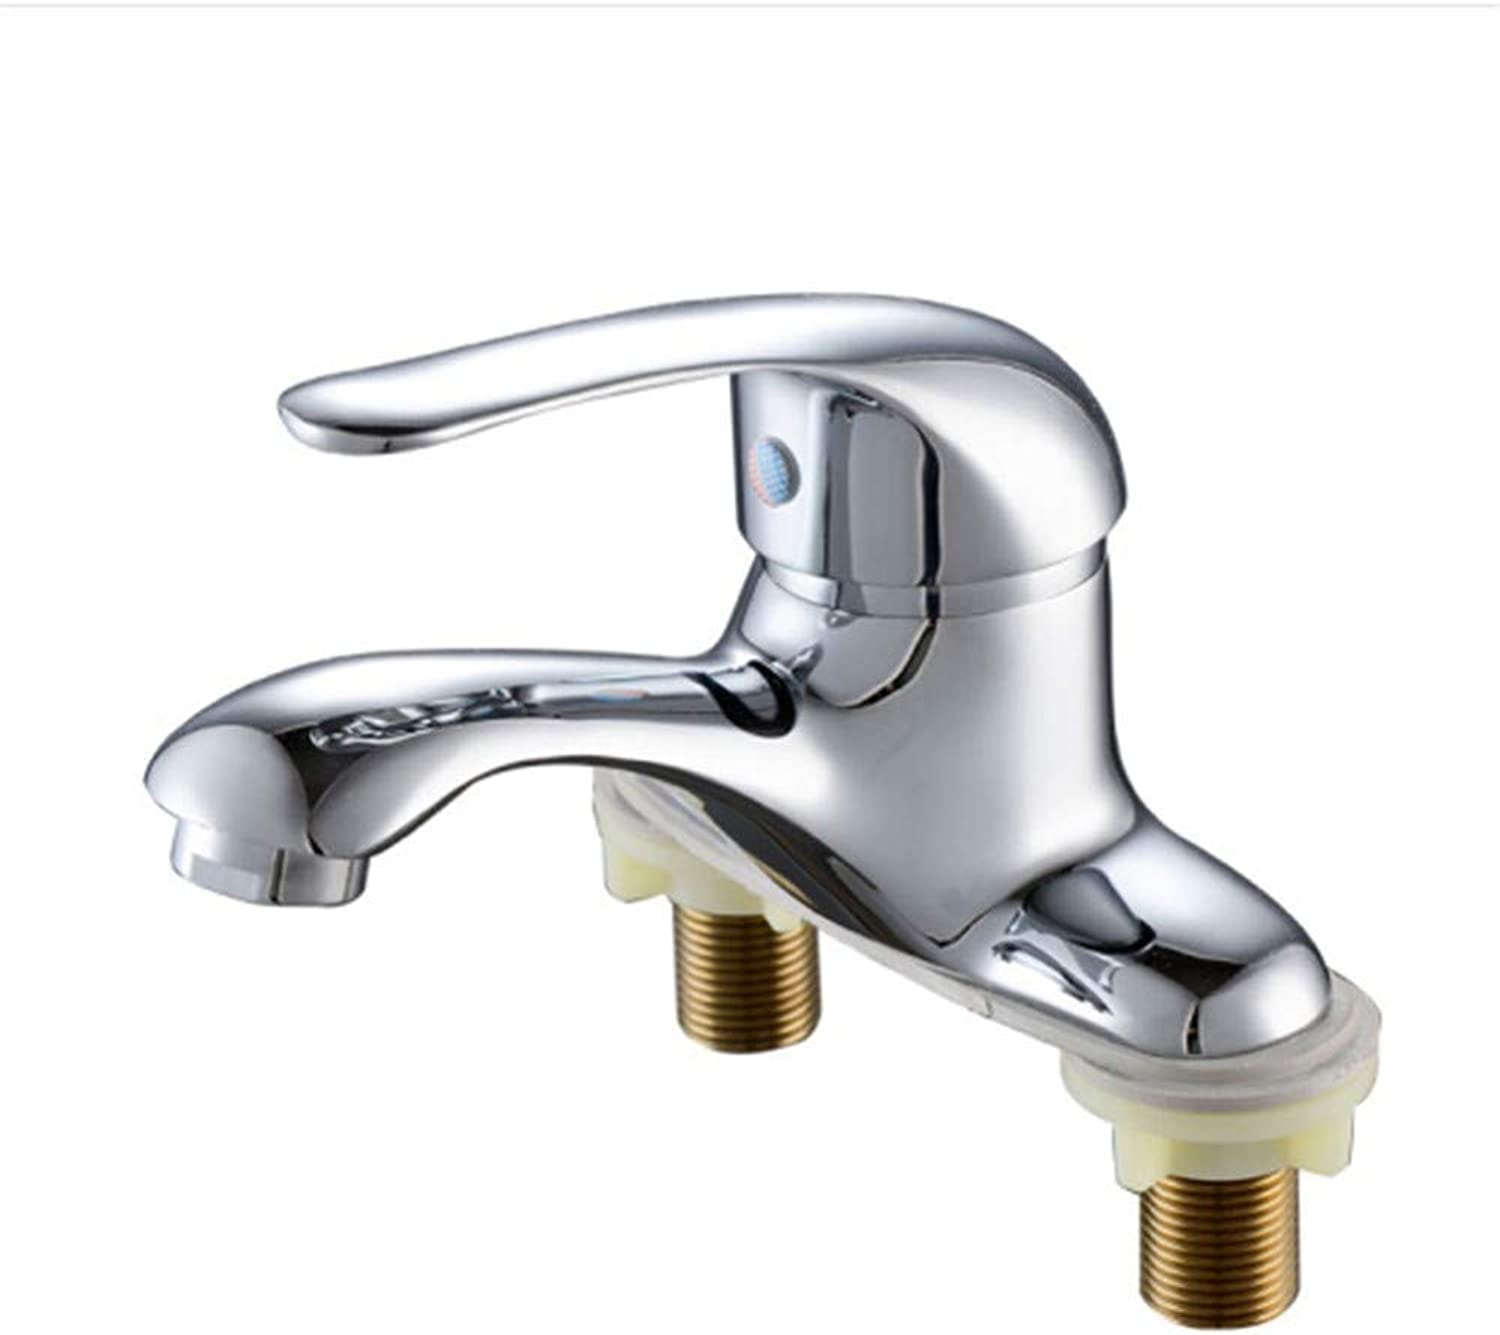 Water Tapdrinking Designer Archdouble-Hole Washbasin, Bathroom, Bathroom, Basin, Table, Basin Faucet